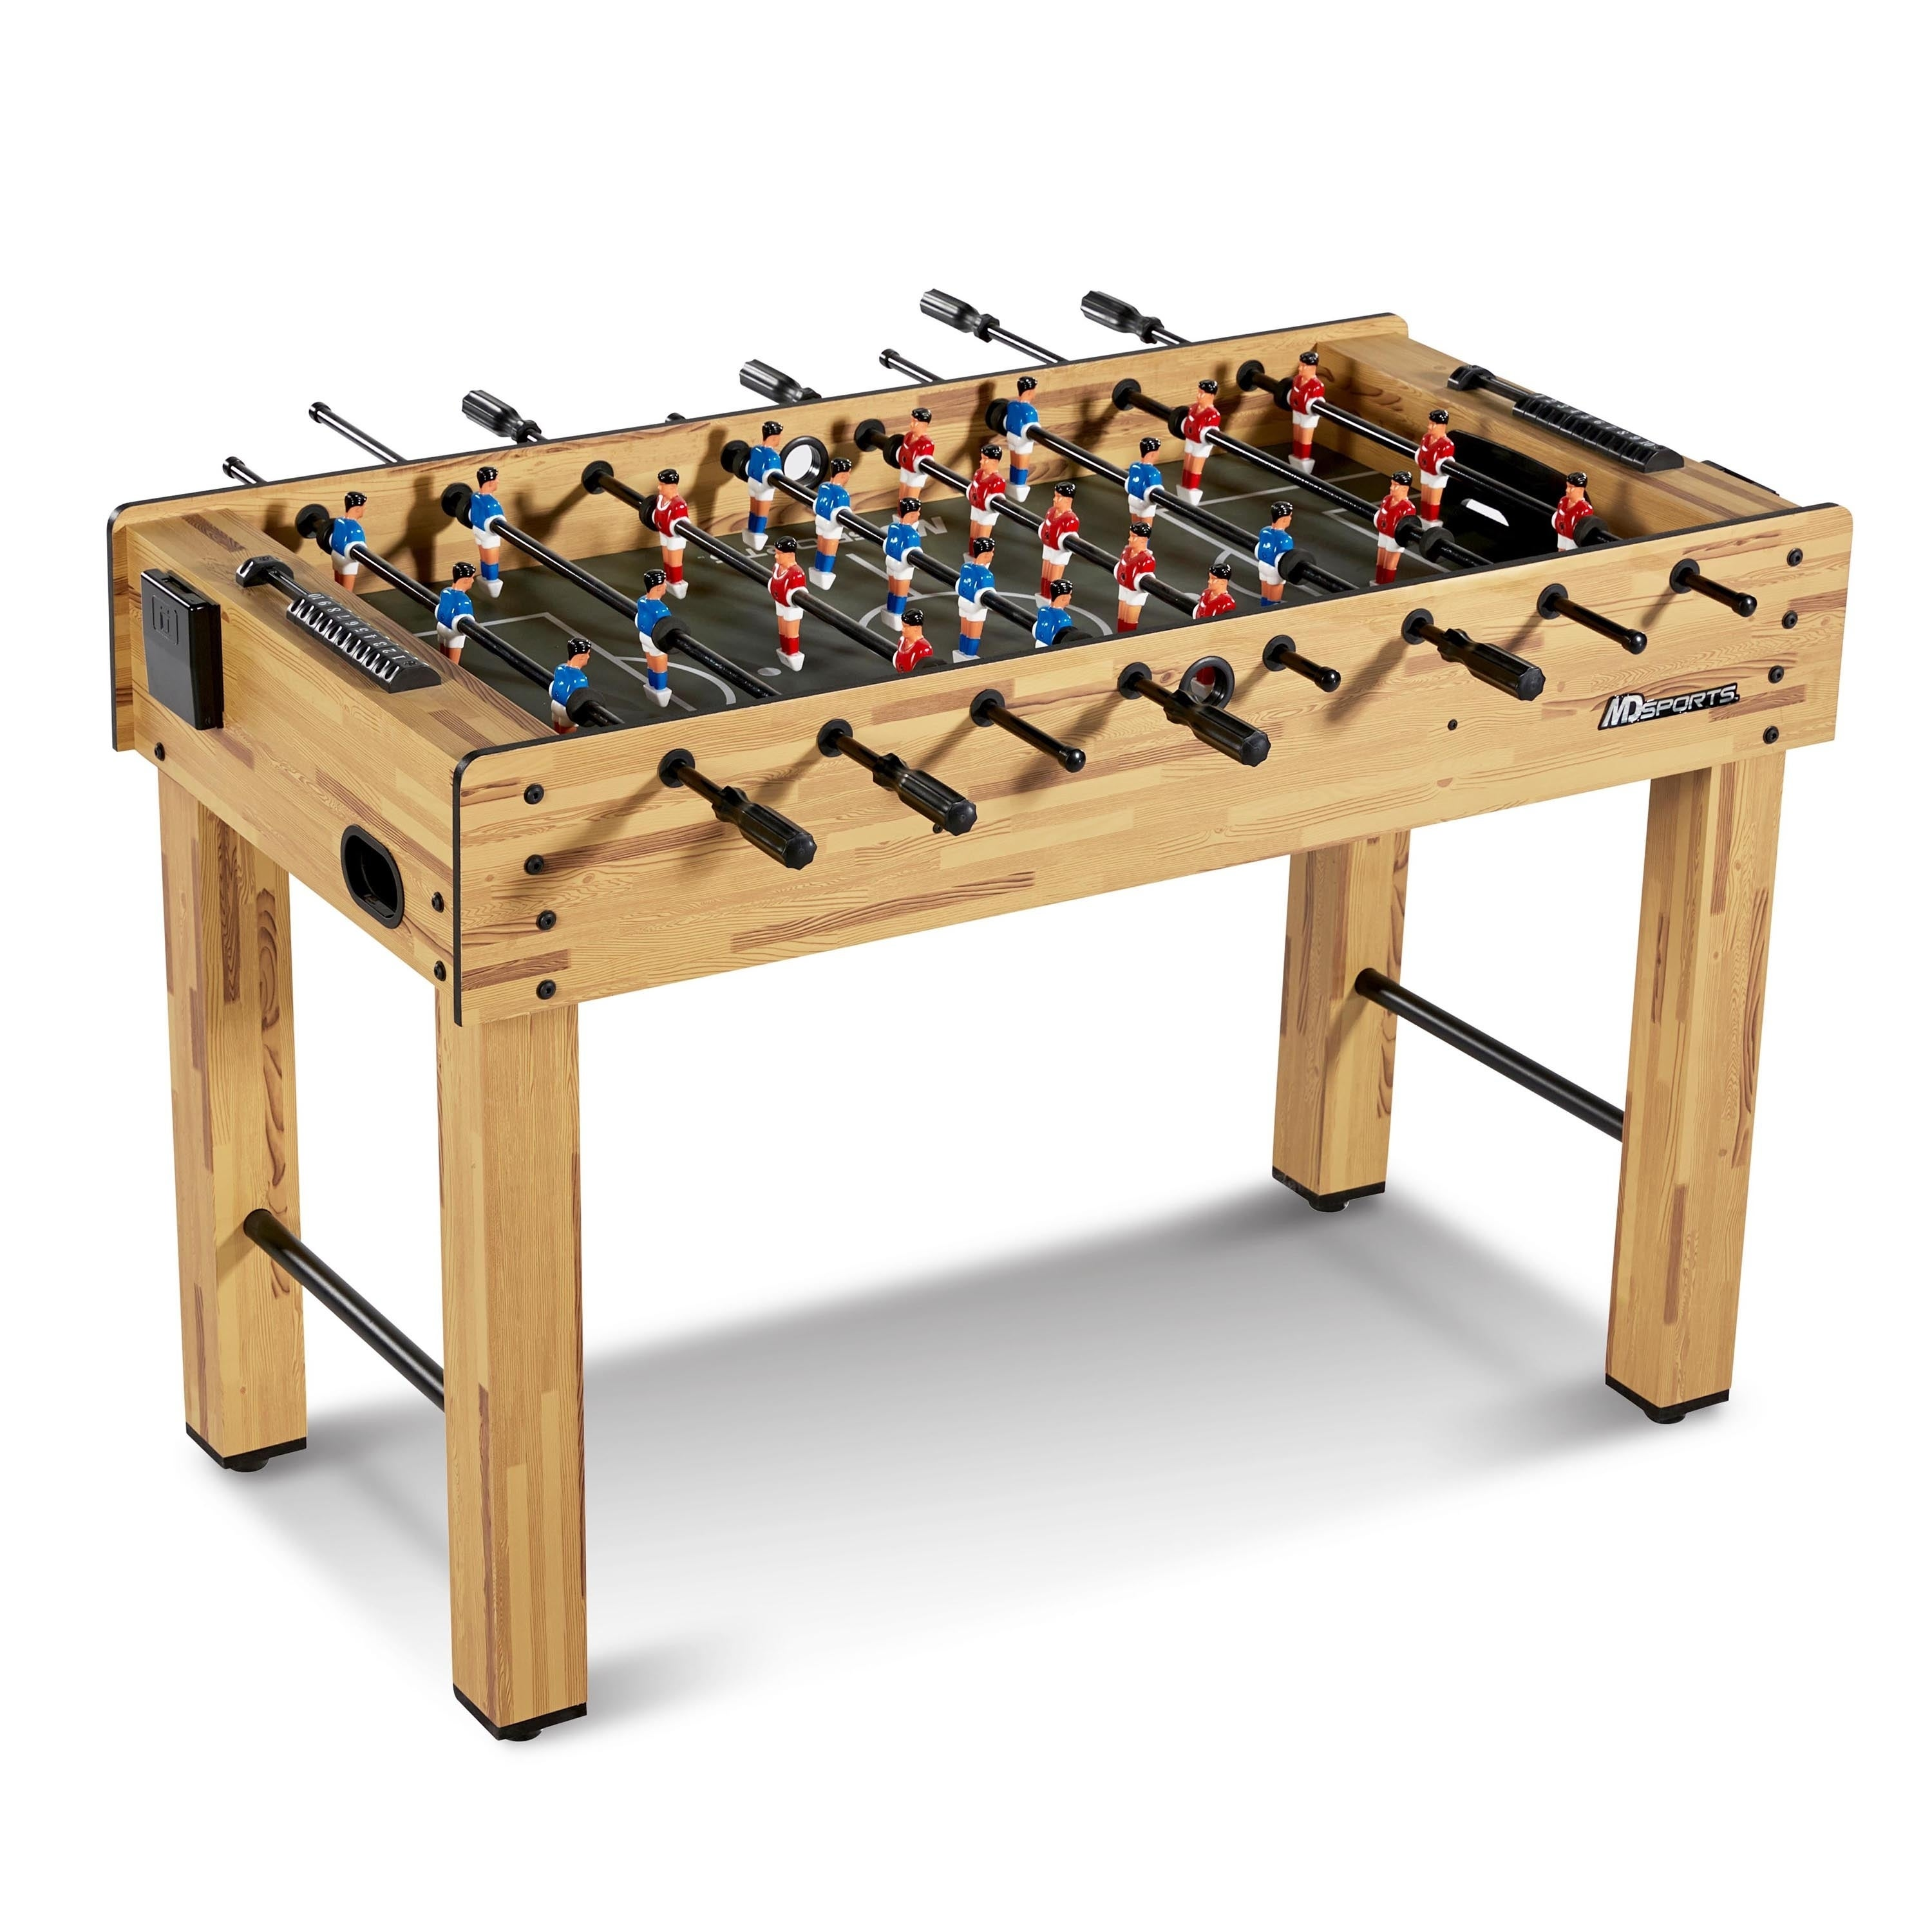 Md Sports 48 Inch Foosball Table Overstock 17933974